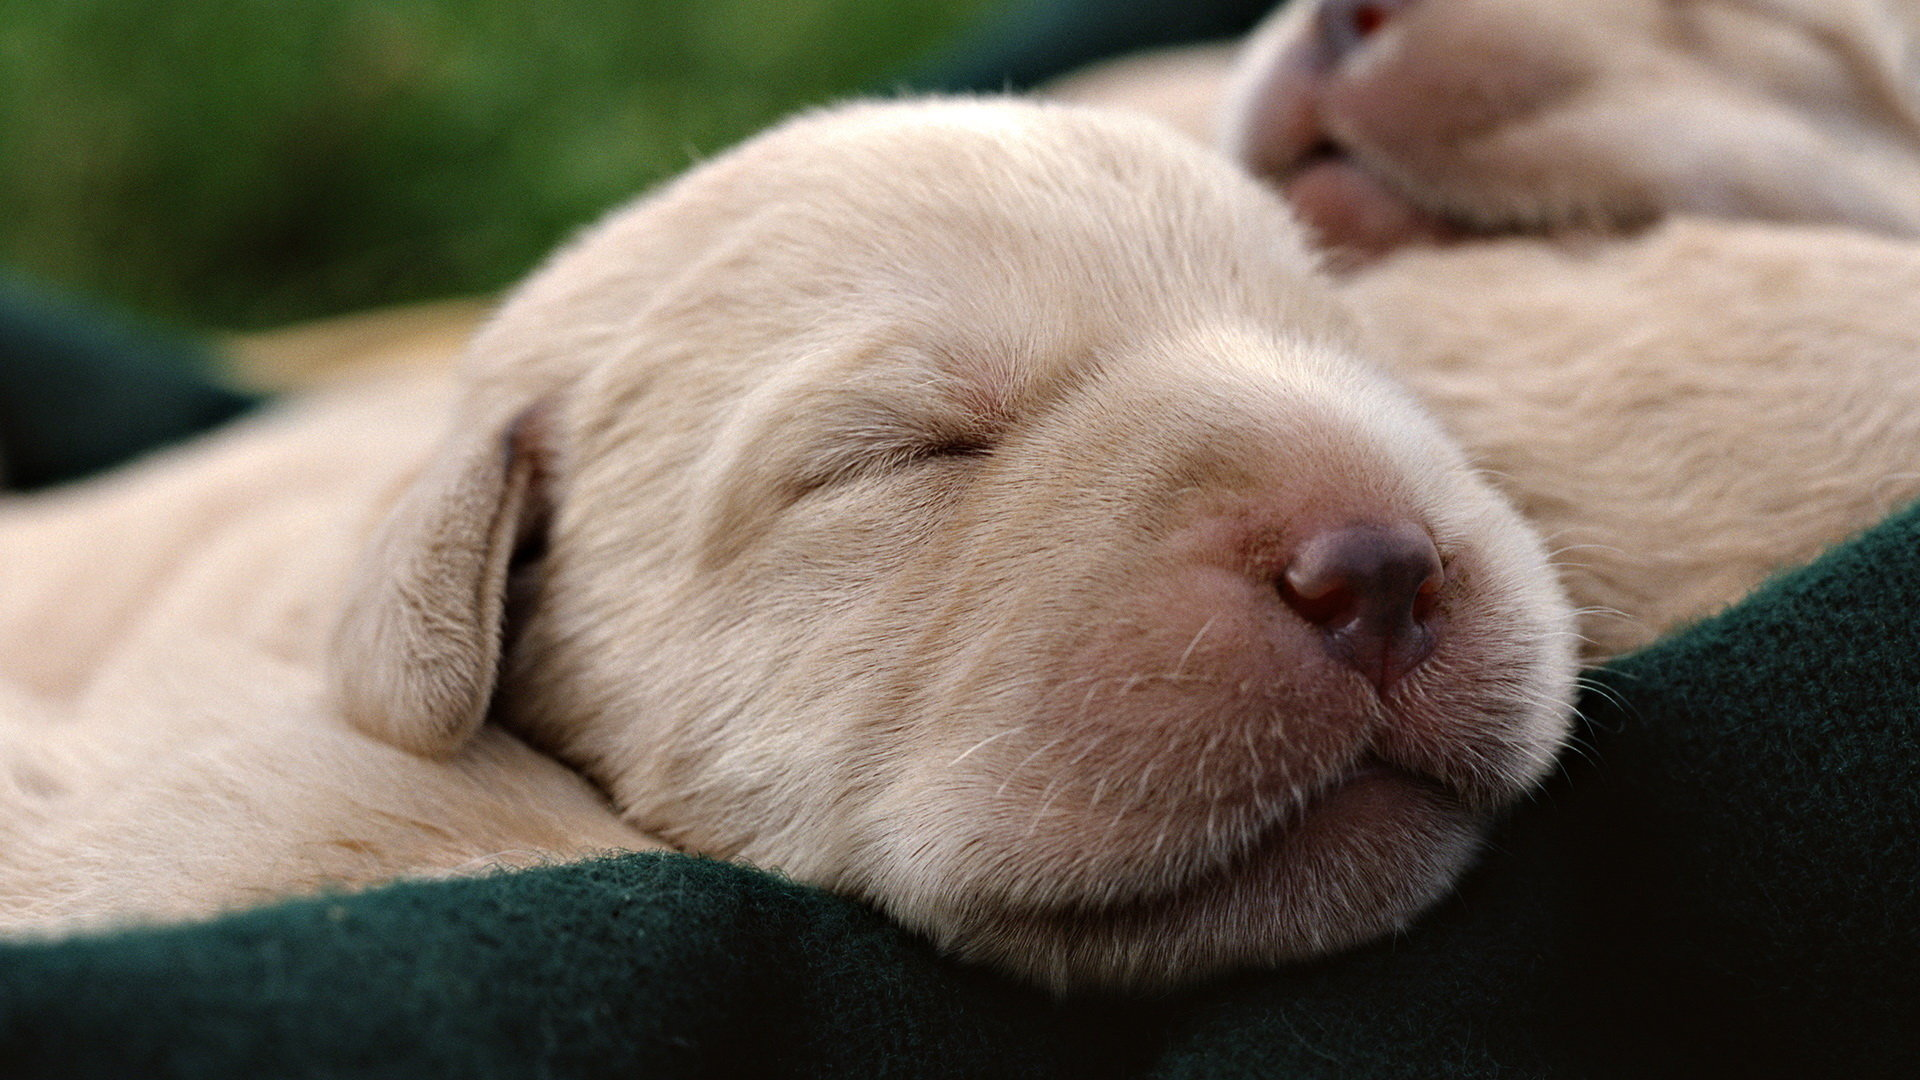 Download full hd 1080p Puppy PC background ID:46935 for free